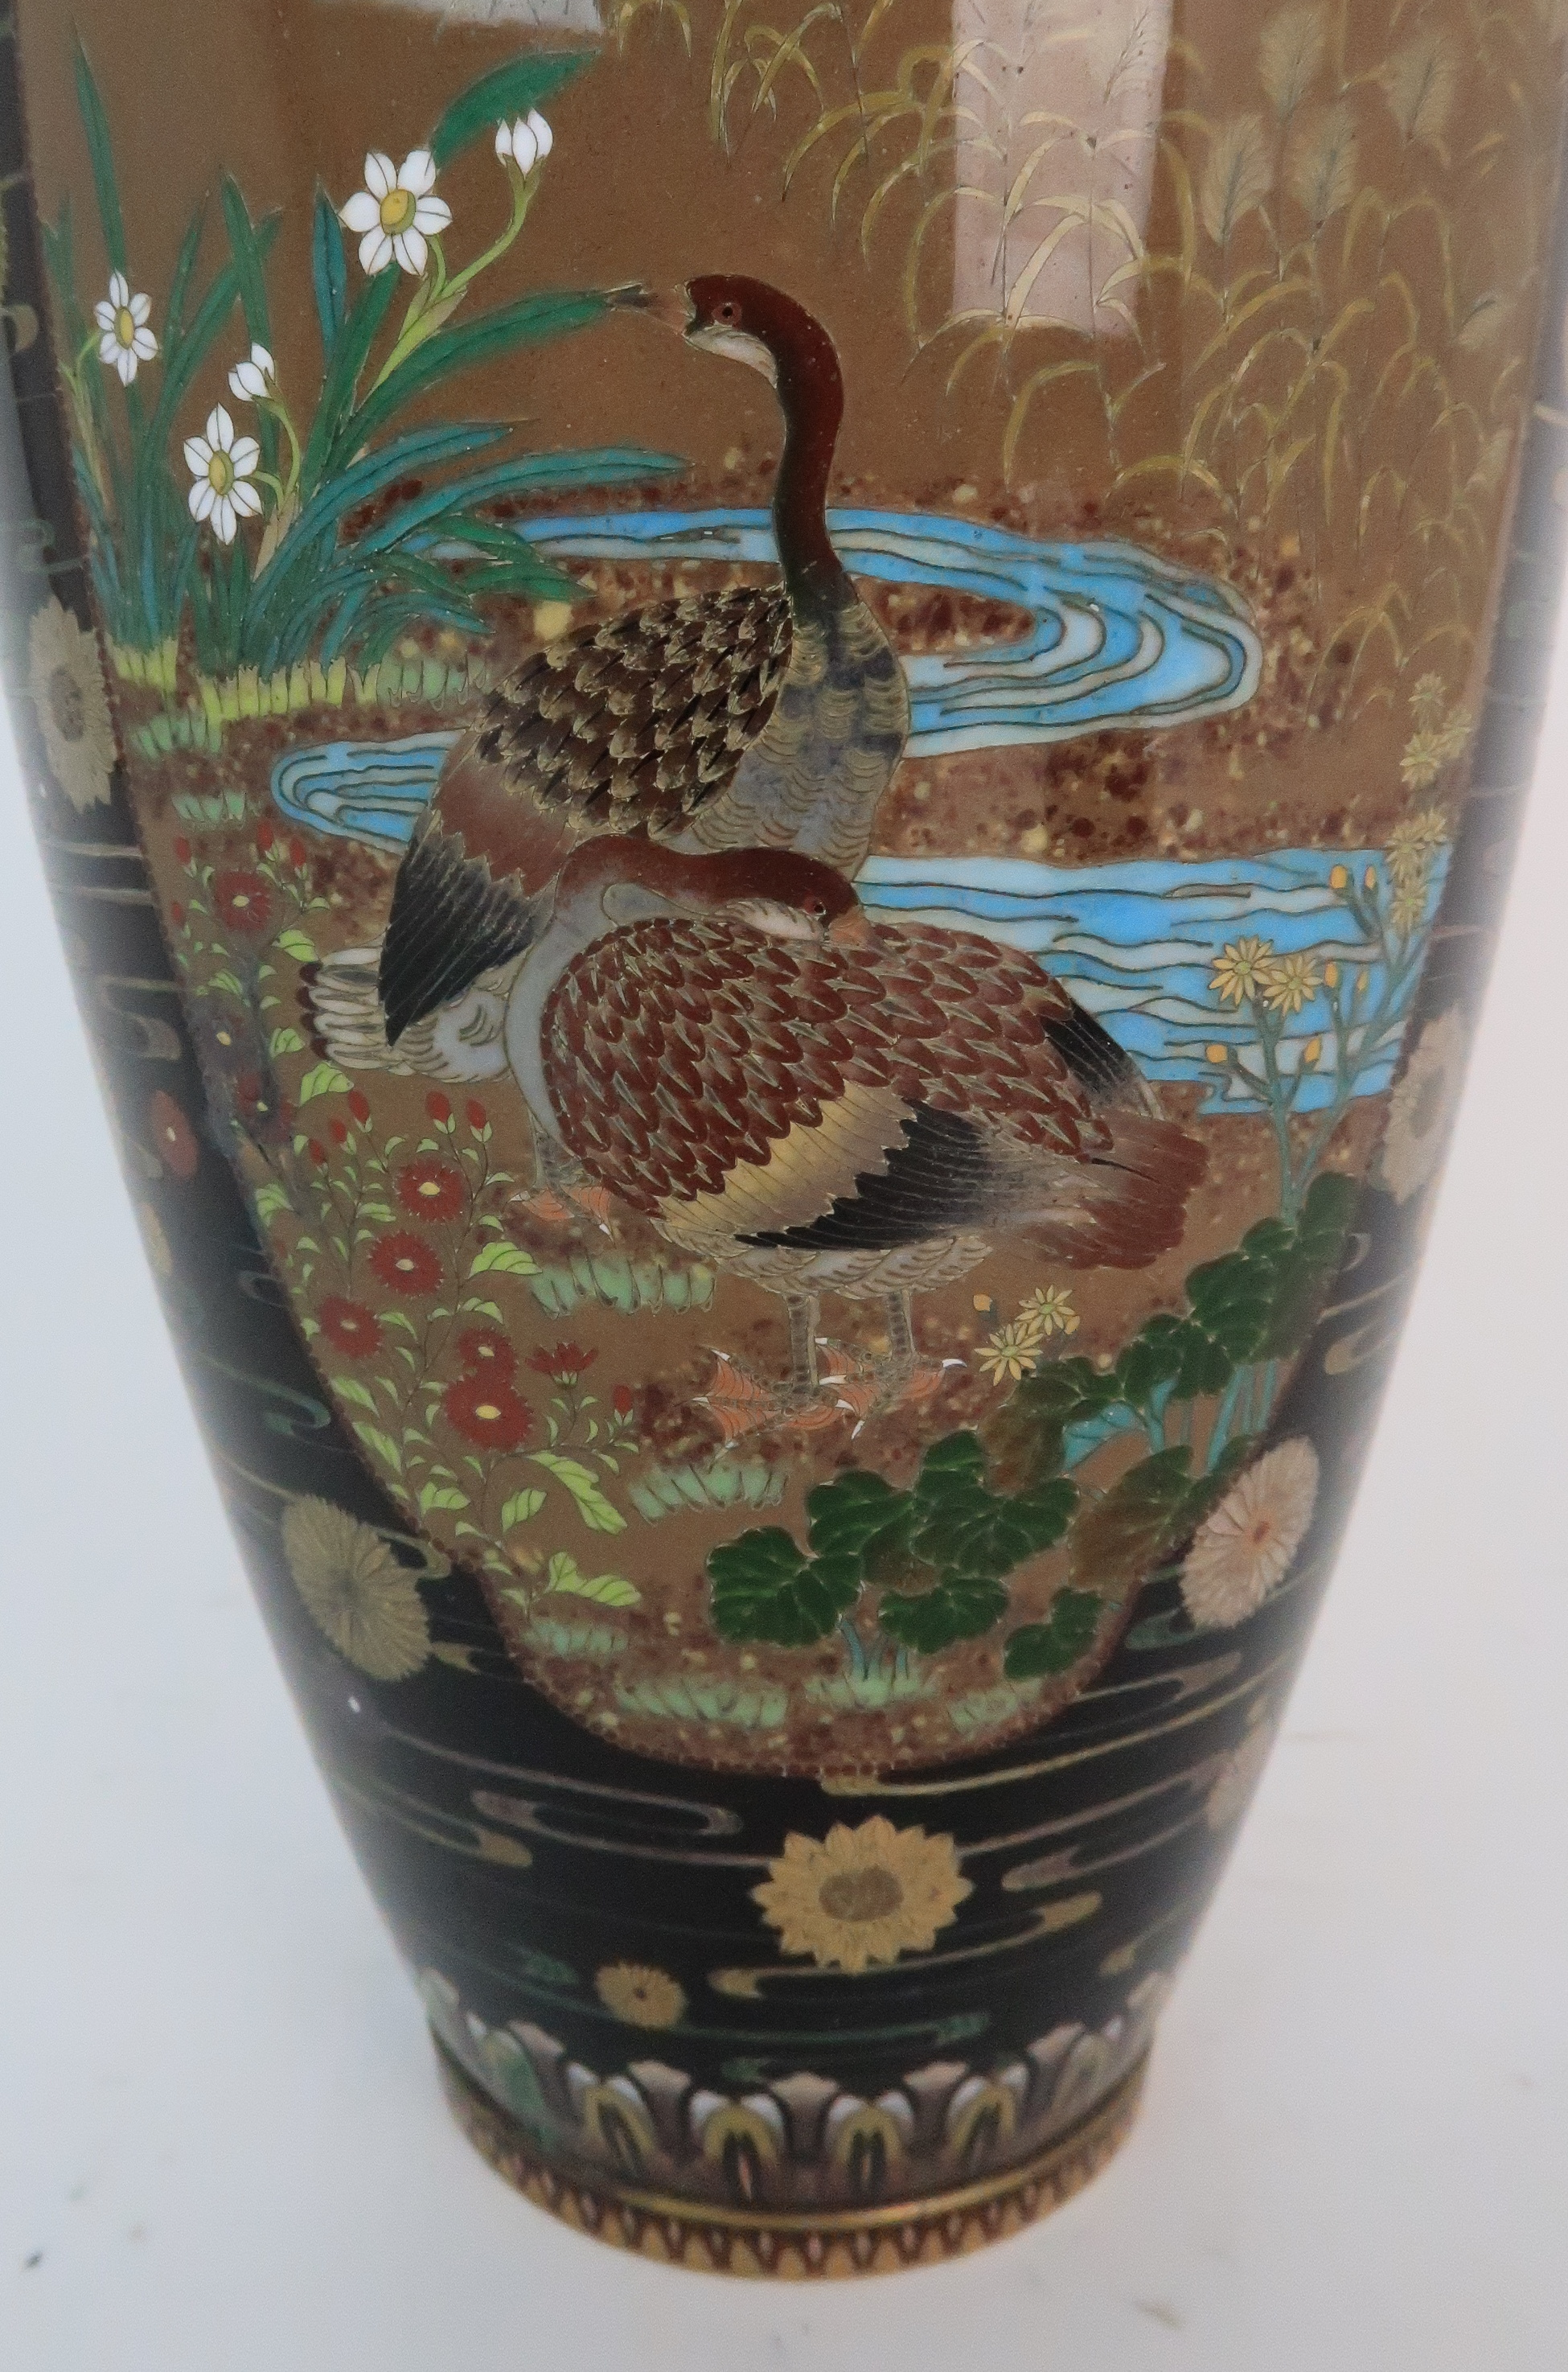 A JAPANESE CLOISONNE BALUSTER VASE finely decorated with panels of birds, butterflies, plants and - Image 9 of 15